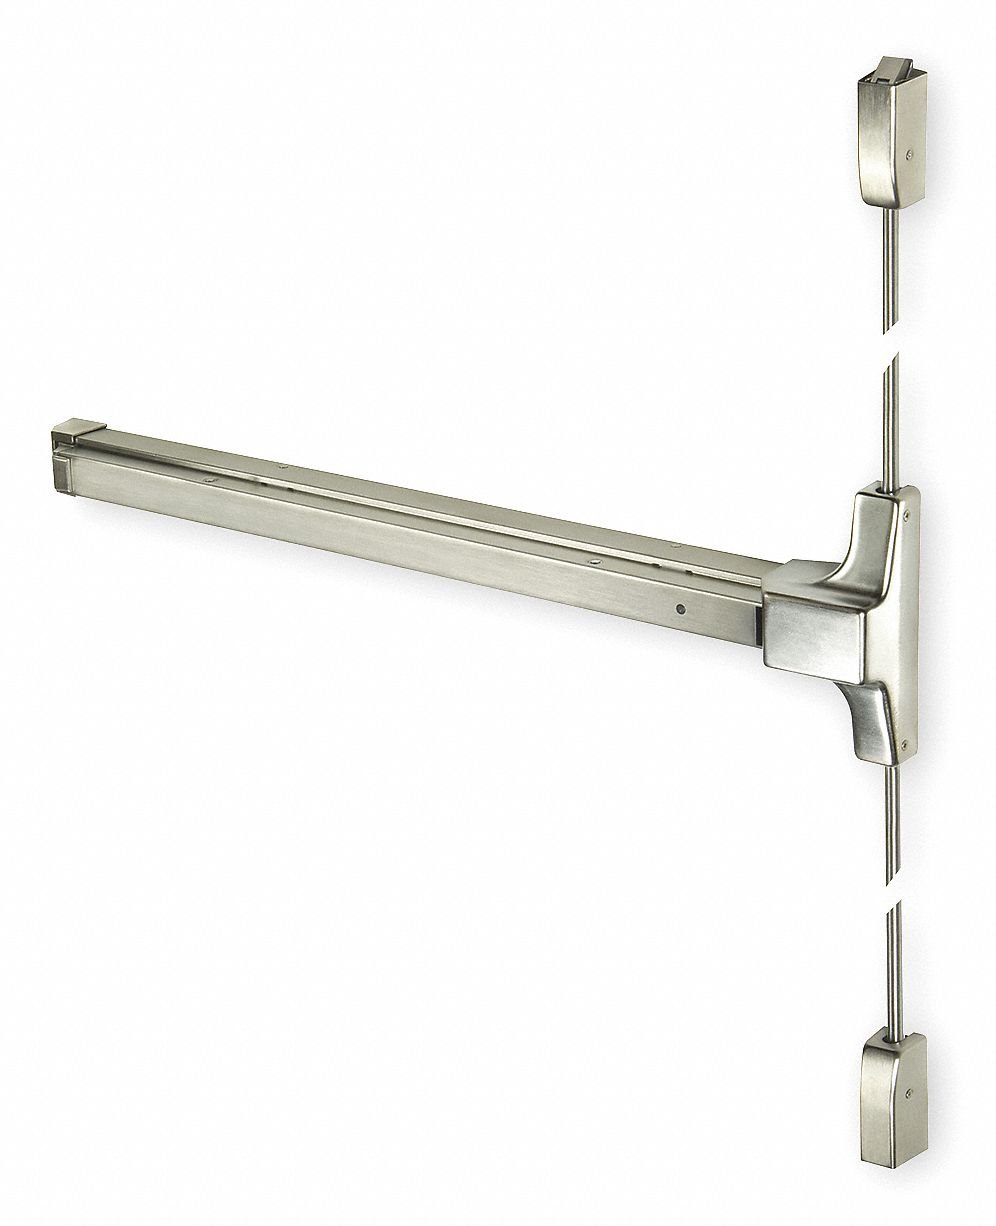 Exit Device Stainless Steel Surface Vertical Rod Series 2100